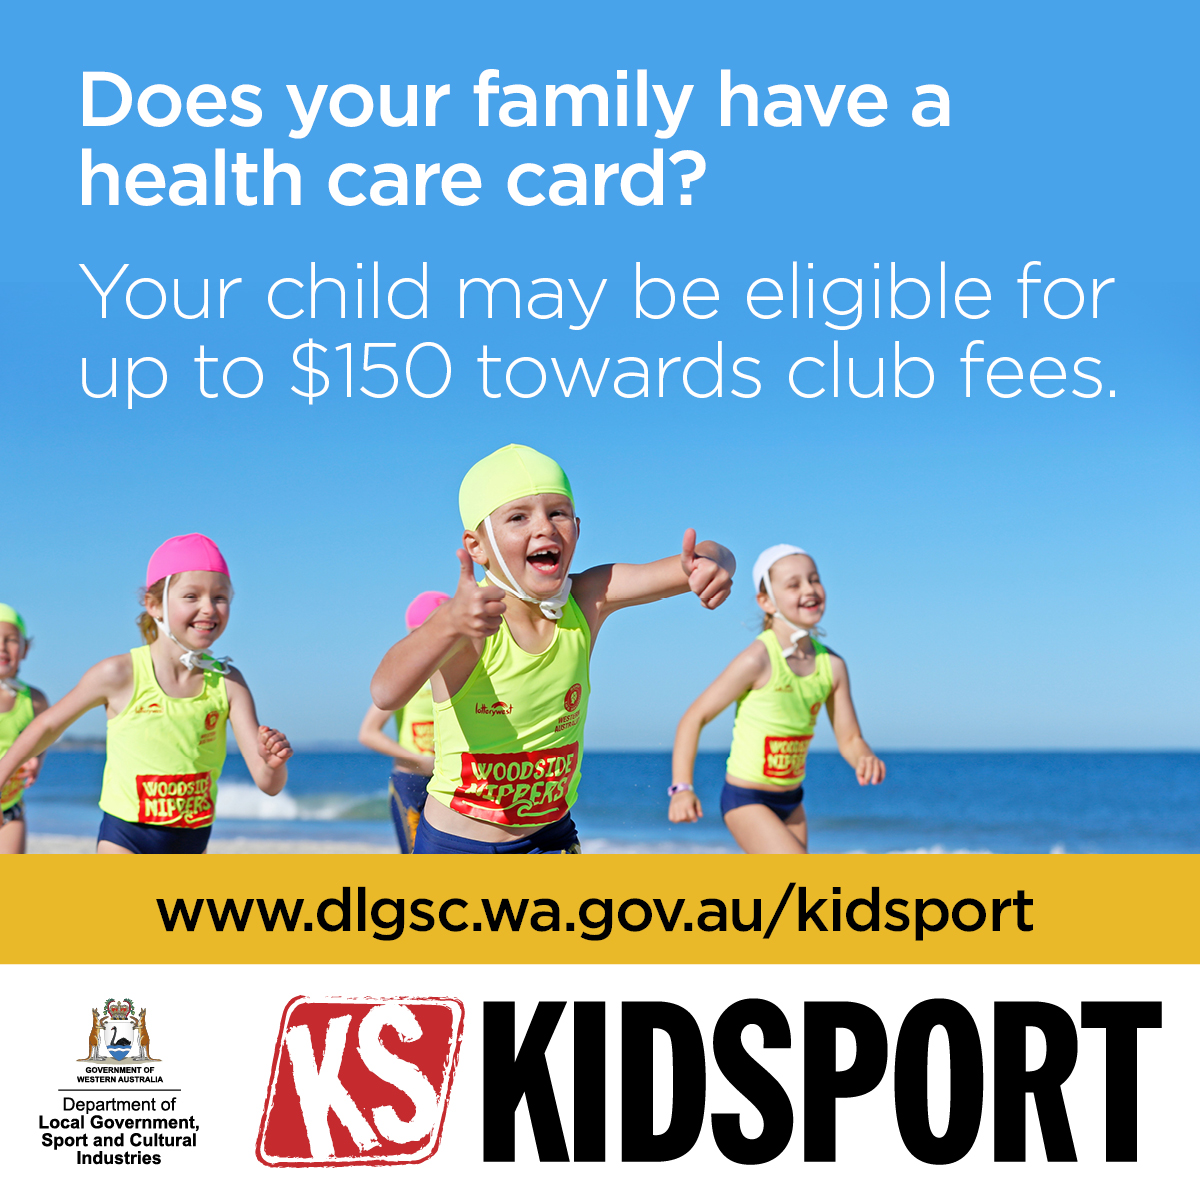 Does your family have a health care card? Your child may be eligible for up to $150 towards club fees. More info on https://staging.dlgsc.wa.gov.au/funding/sport-and-recreation-funding/kidsport/information-for-parents